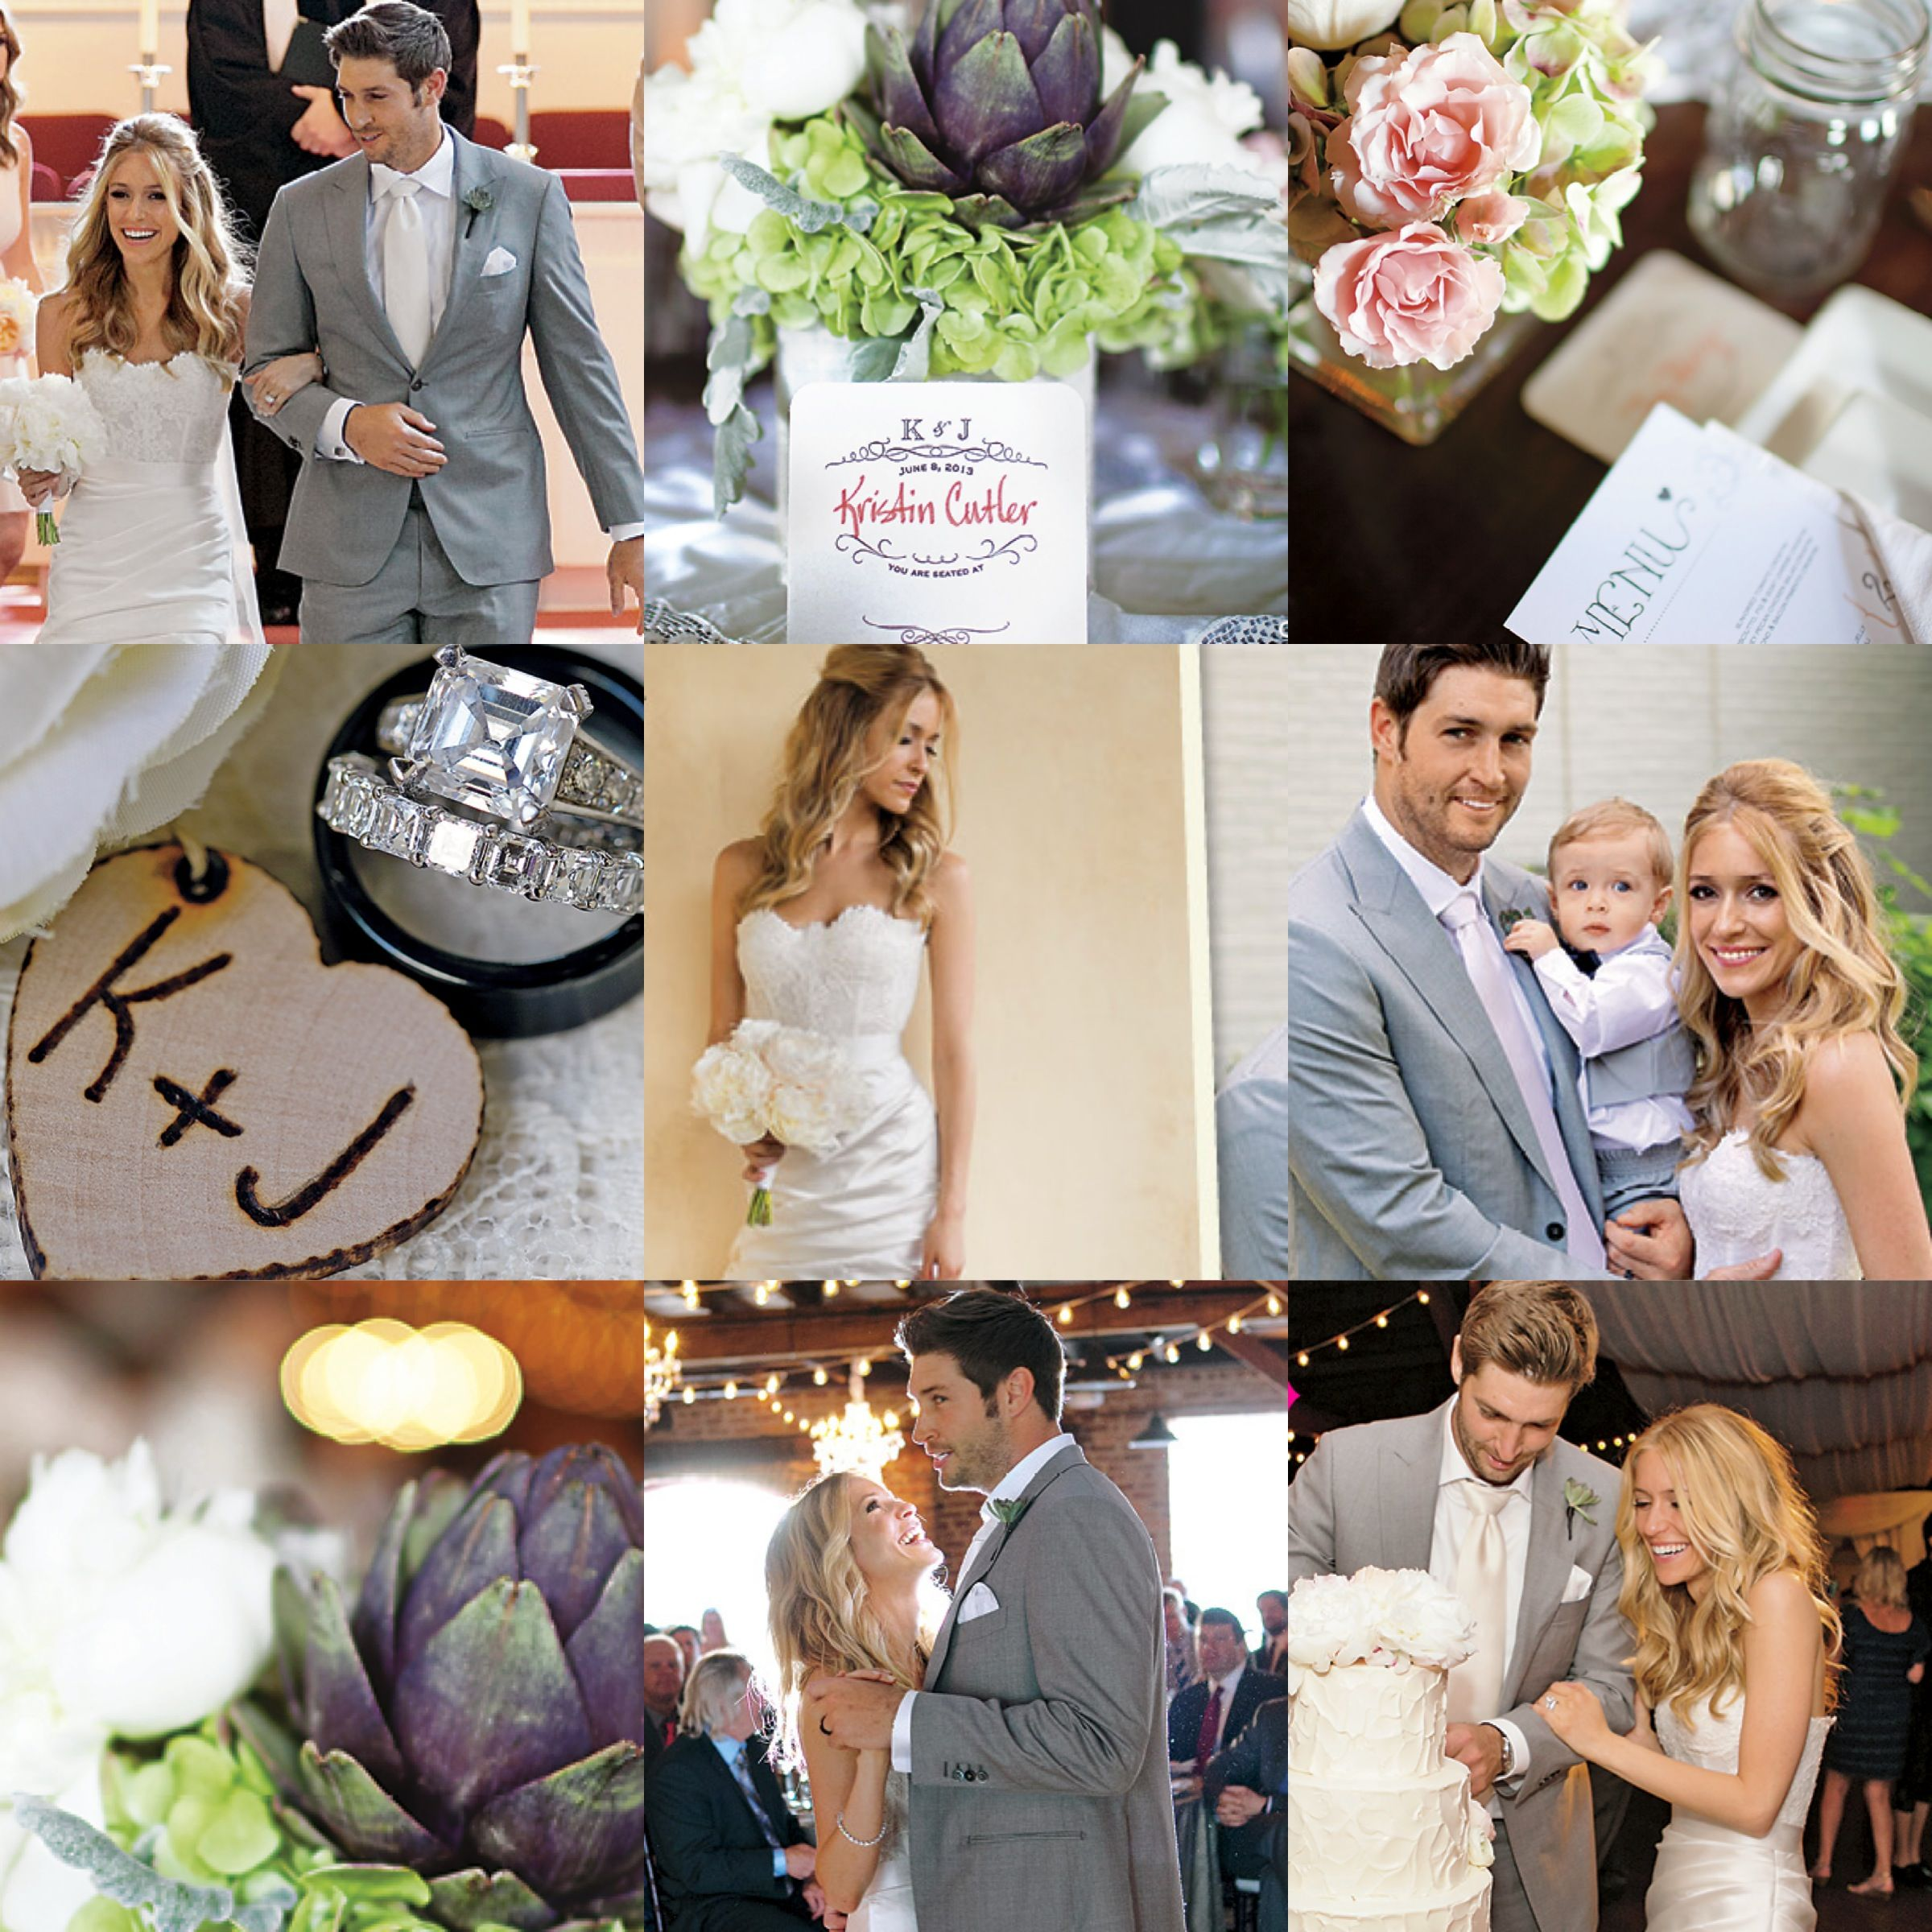 Pin By Delaney Norris On Krissys Hair And Such Kristin Cavallari Wedding Ideal Wedding Floral Wedding